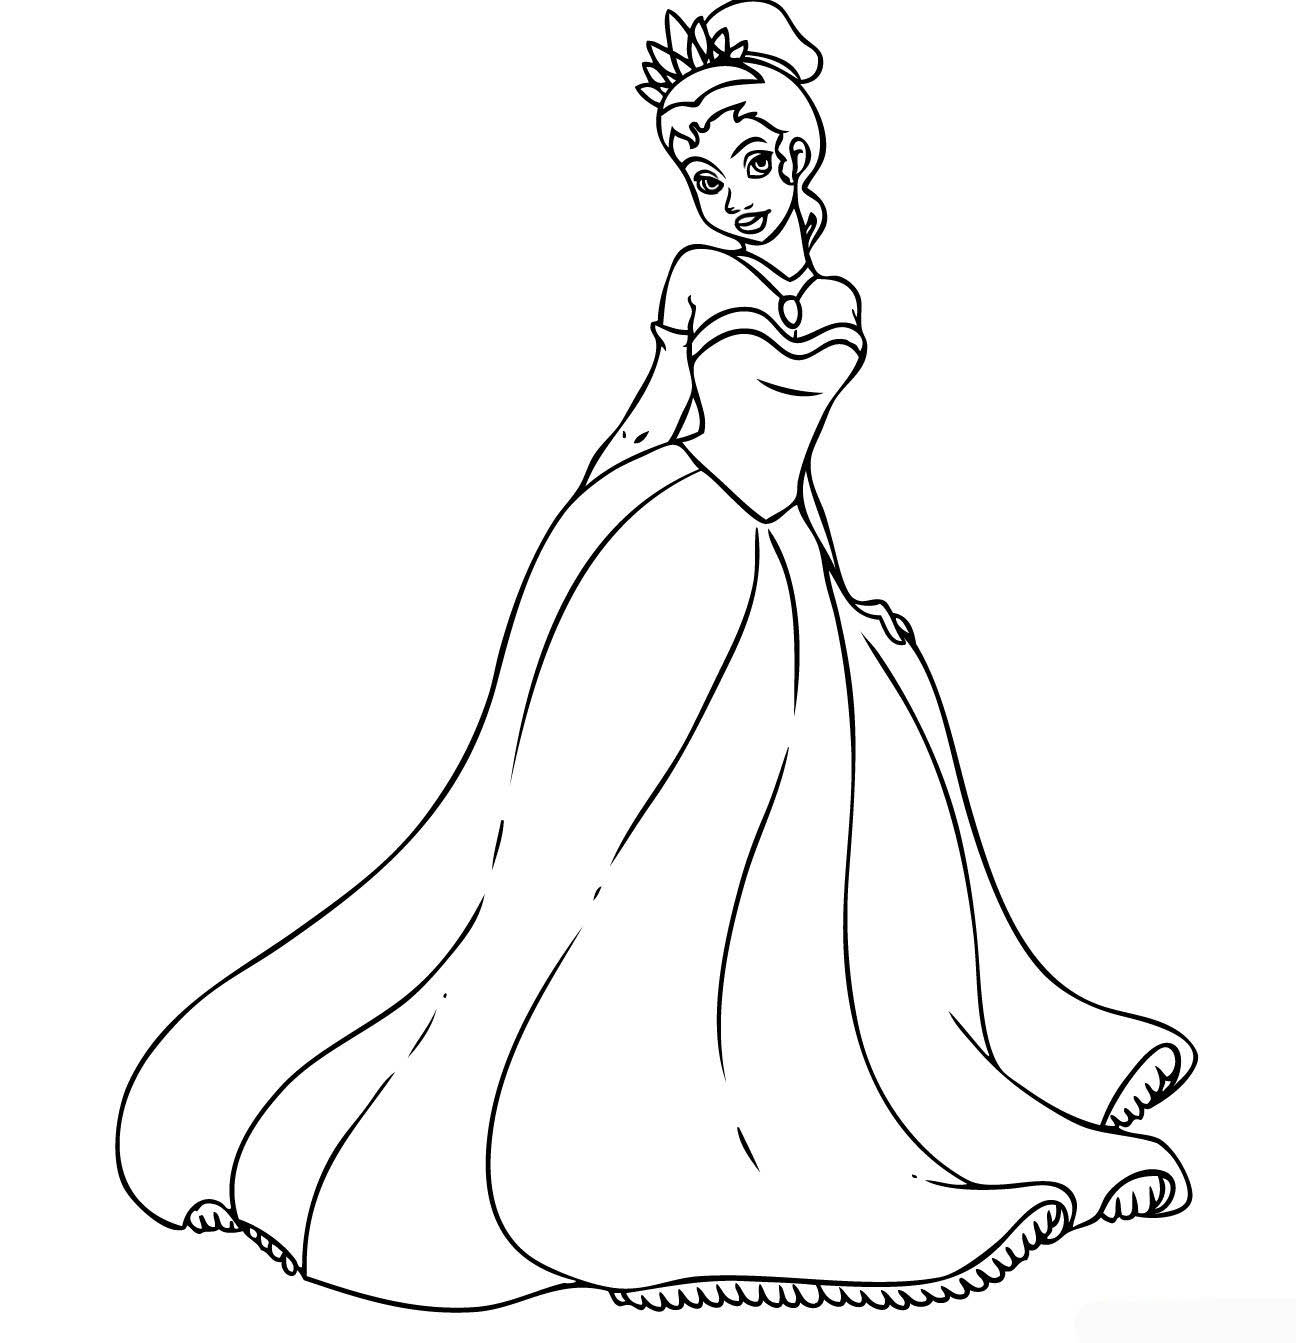 Disney Princess Tiana Coloring Pages To Girls Princess Coloring Pictures